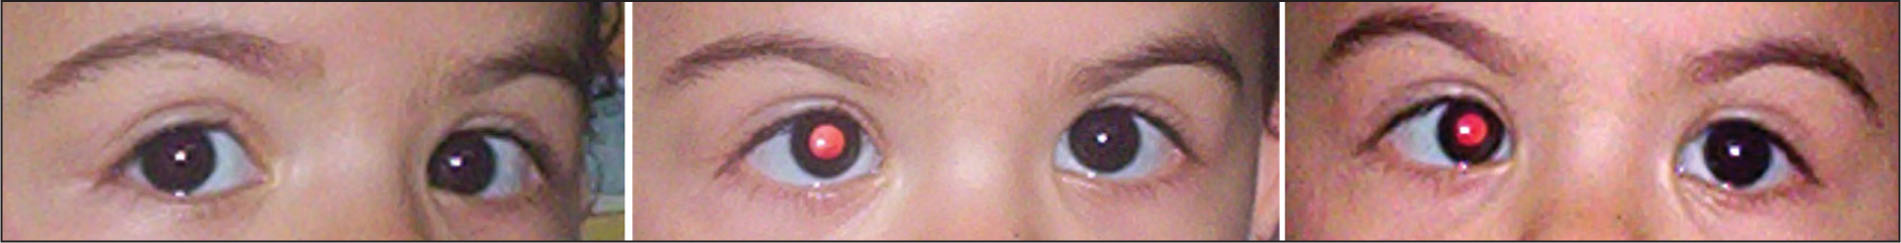 Esotropia in Primary Position, Which Increases in the Field of Action of the Paretic Lateral Rectus Muscle of the Left Eye. Ocular Version Testing Revealed an Inability to Abduct the Left Eye past the Midline. Pupils Were Dilated for Fundus Examination.